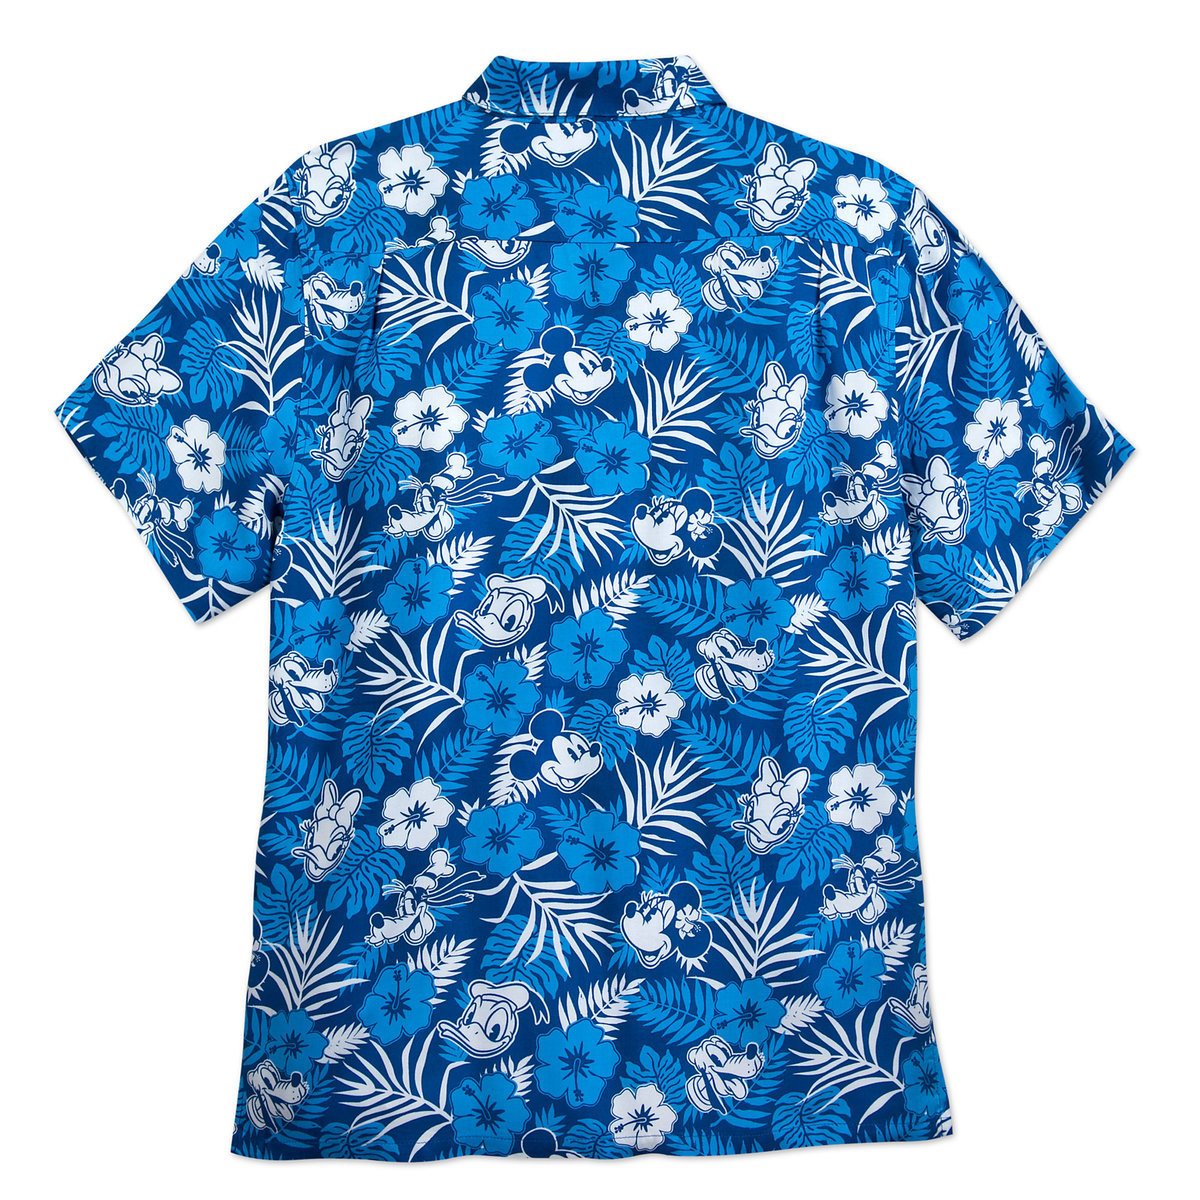 bb332311 Product Image of Mickey Mouse and Friends Aloha Shirt for Men - Disney  Hawaii # 3